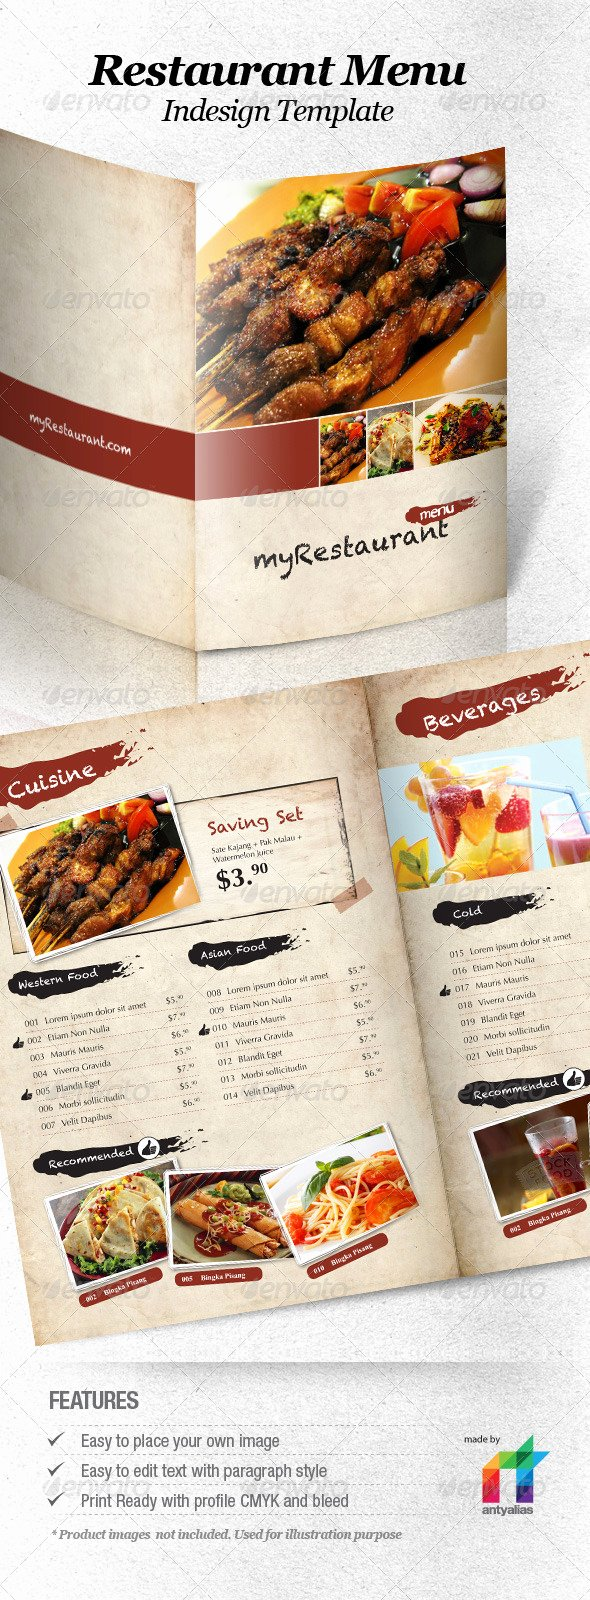 13 Best Selling Menu Templates for Restaurants Premiumcoding